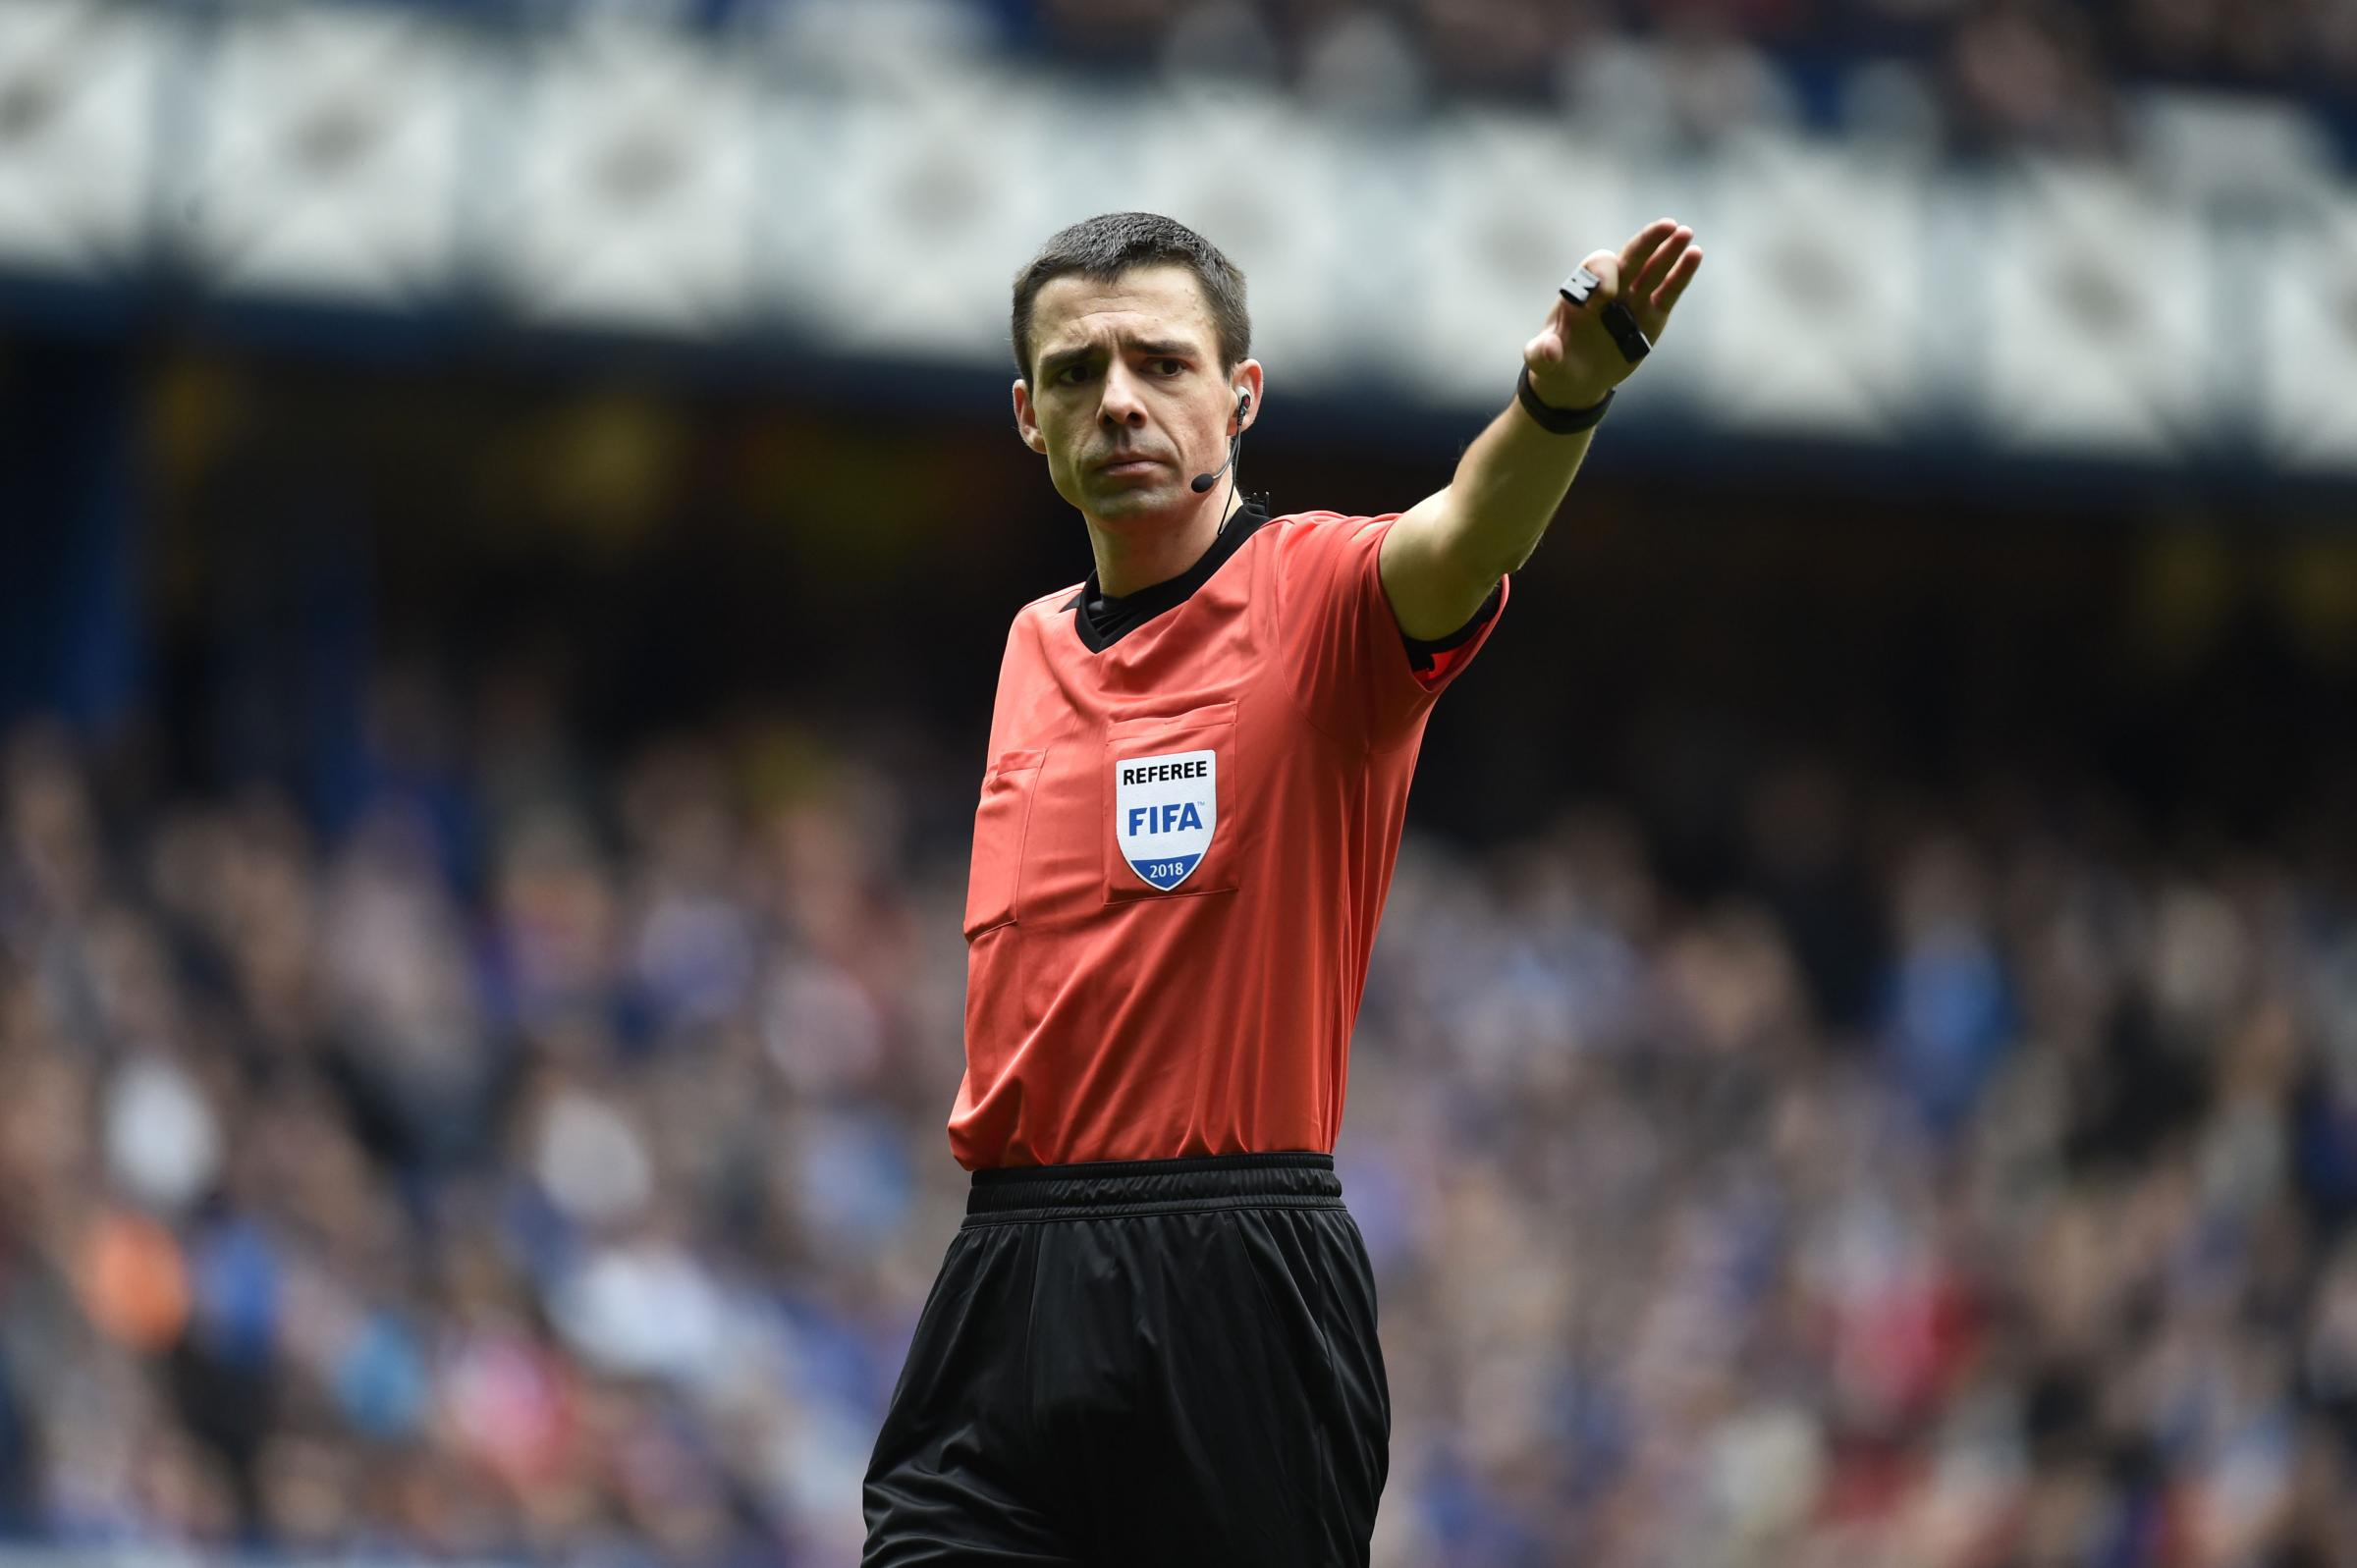 Kevin Clancy to referee Hearts vs Rangers for first time since controversial Hibs vs Celtic clash